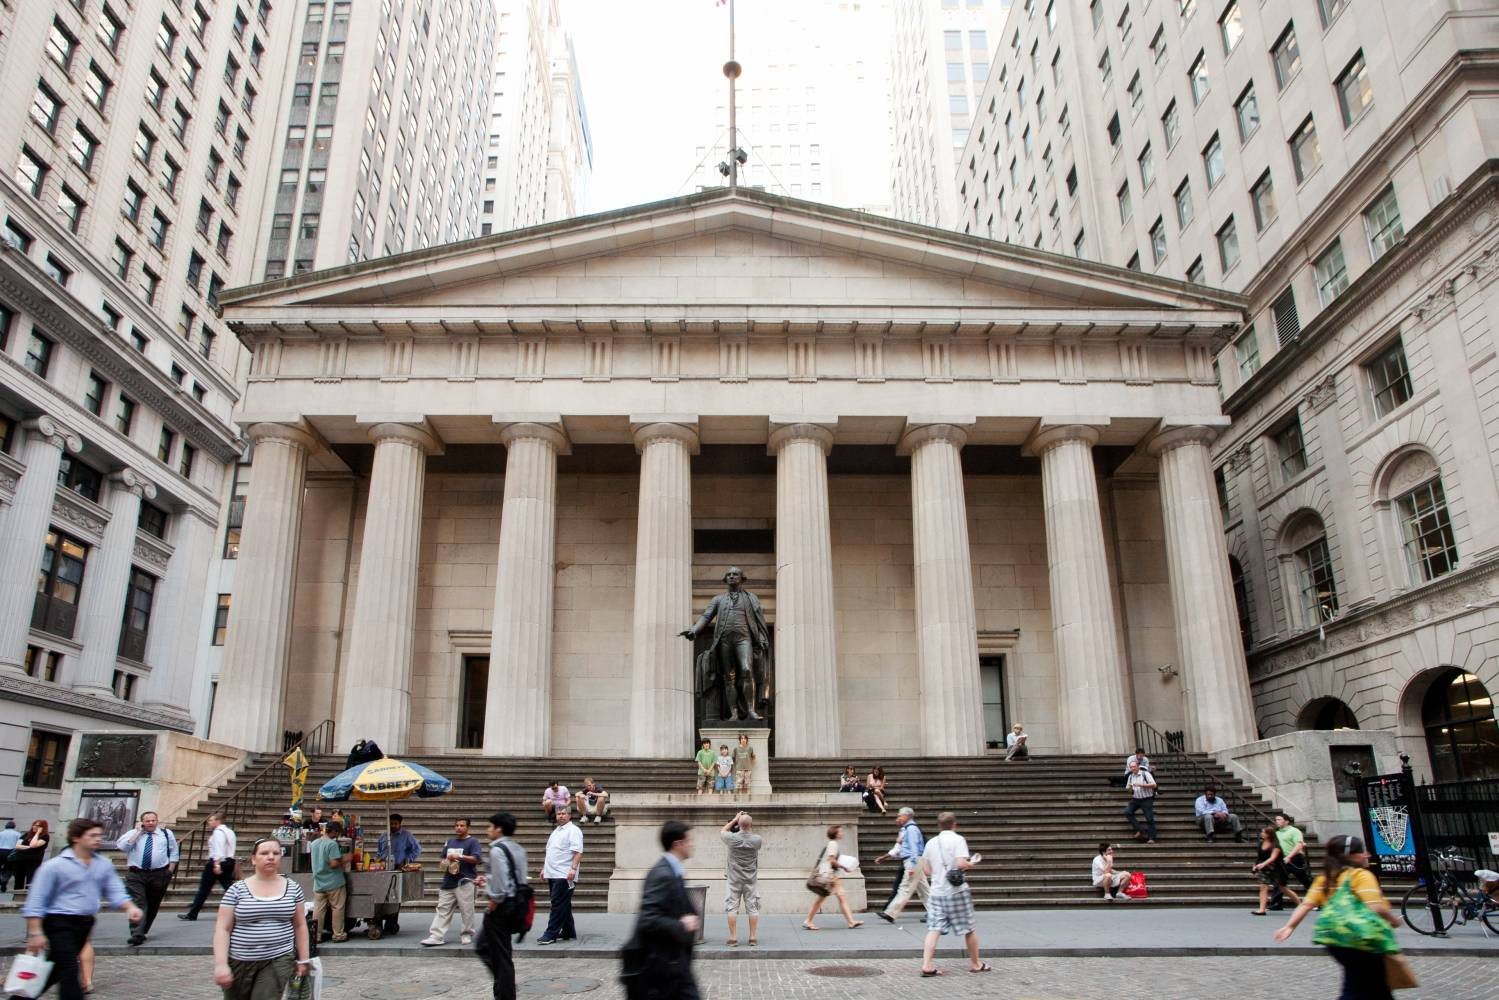 Exterior of Federal Hall on Wall Street